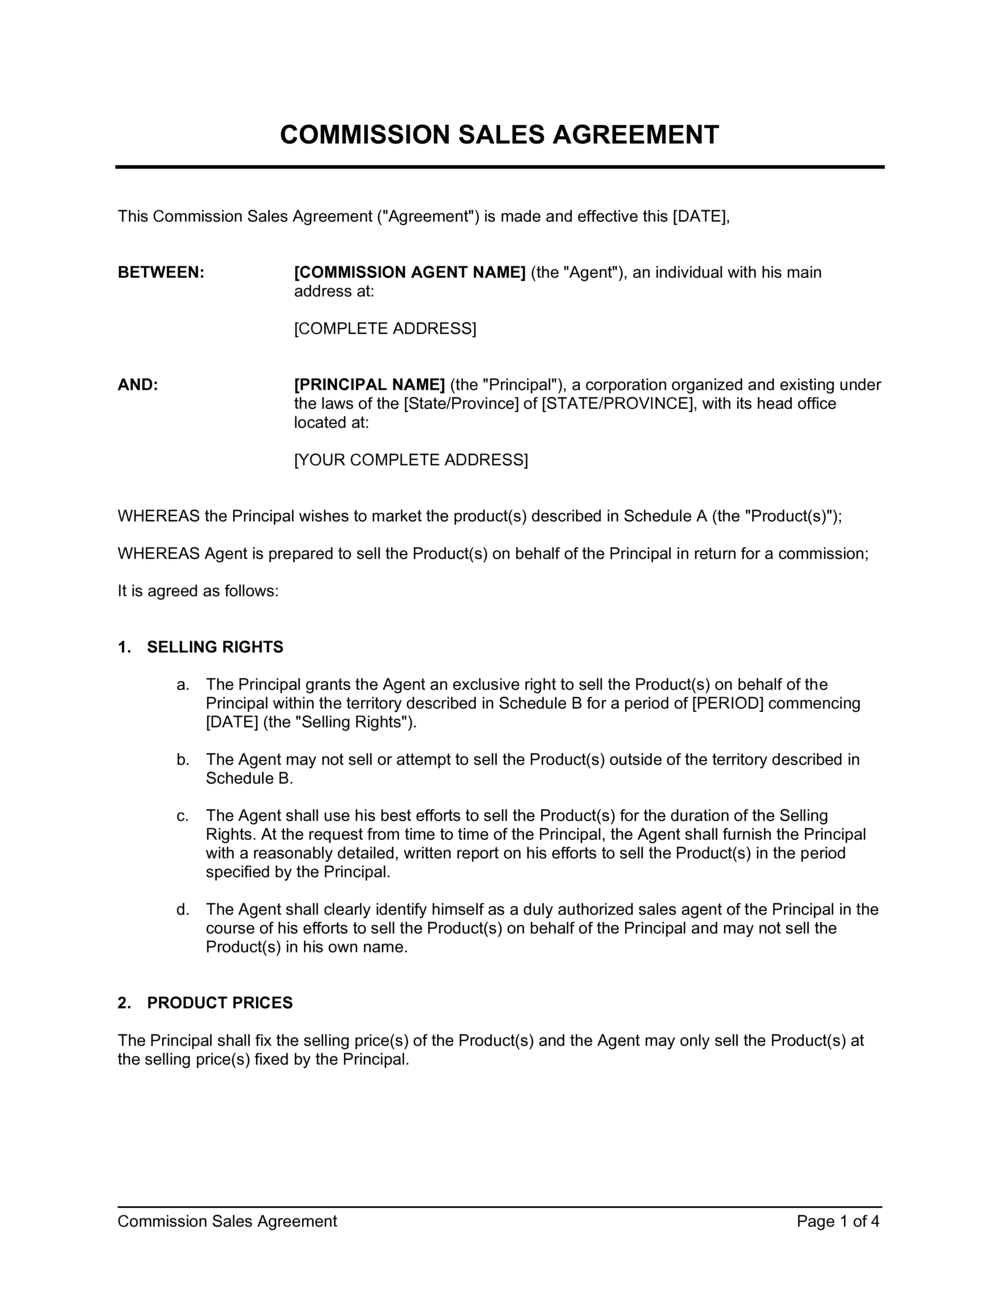 Business-in-a-Box's Commission Sales Agreement Template